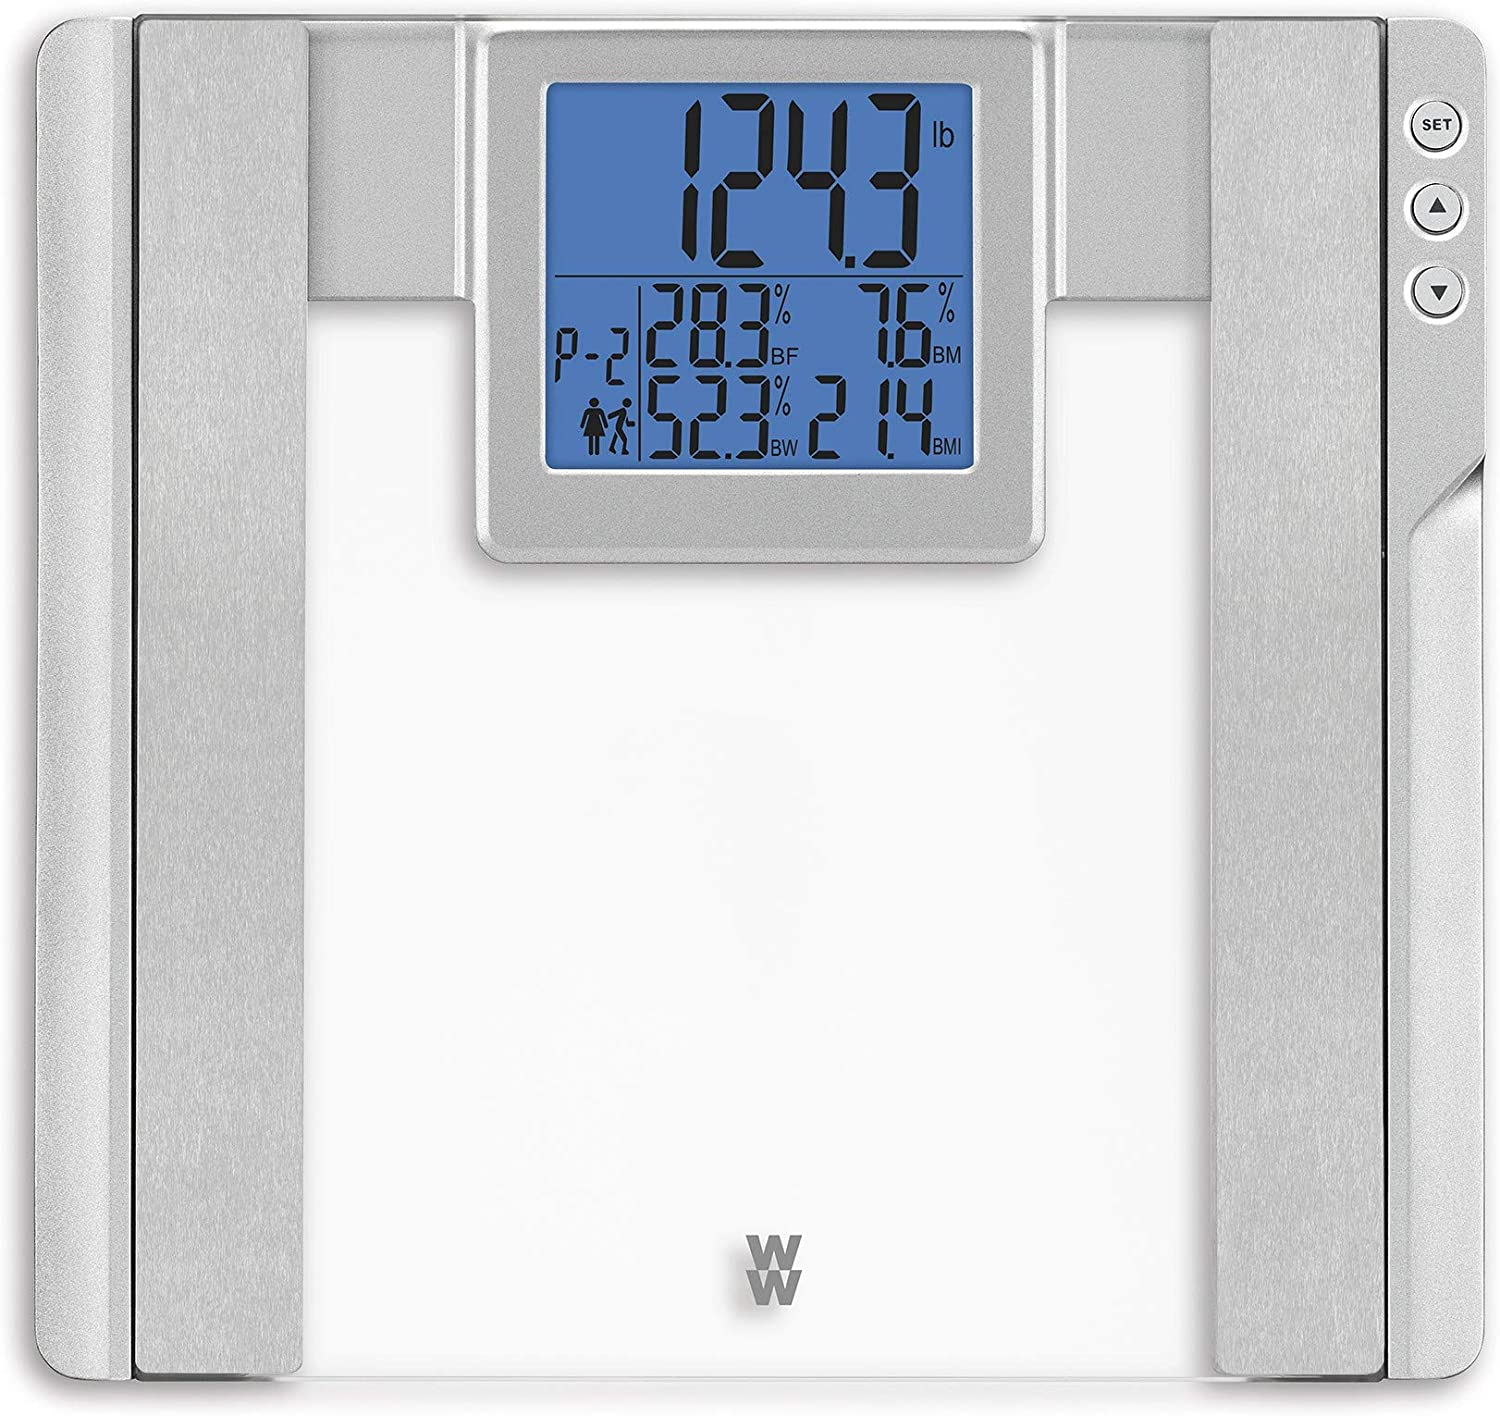 WW Scales by Conair Body Analysis Glass Bathroom Scale-Measures Body Fat, Body Water, Bonemass & BMI; 4 User Memory, Measures up to 400 lbs; Glass with Silver Accents & 3.8